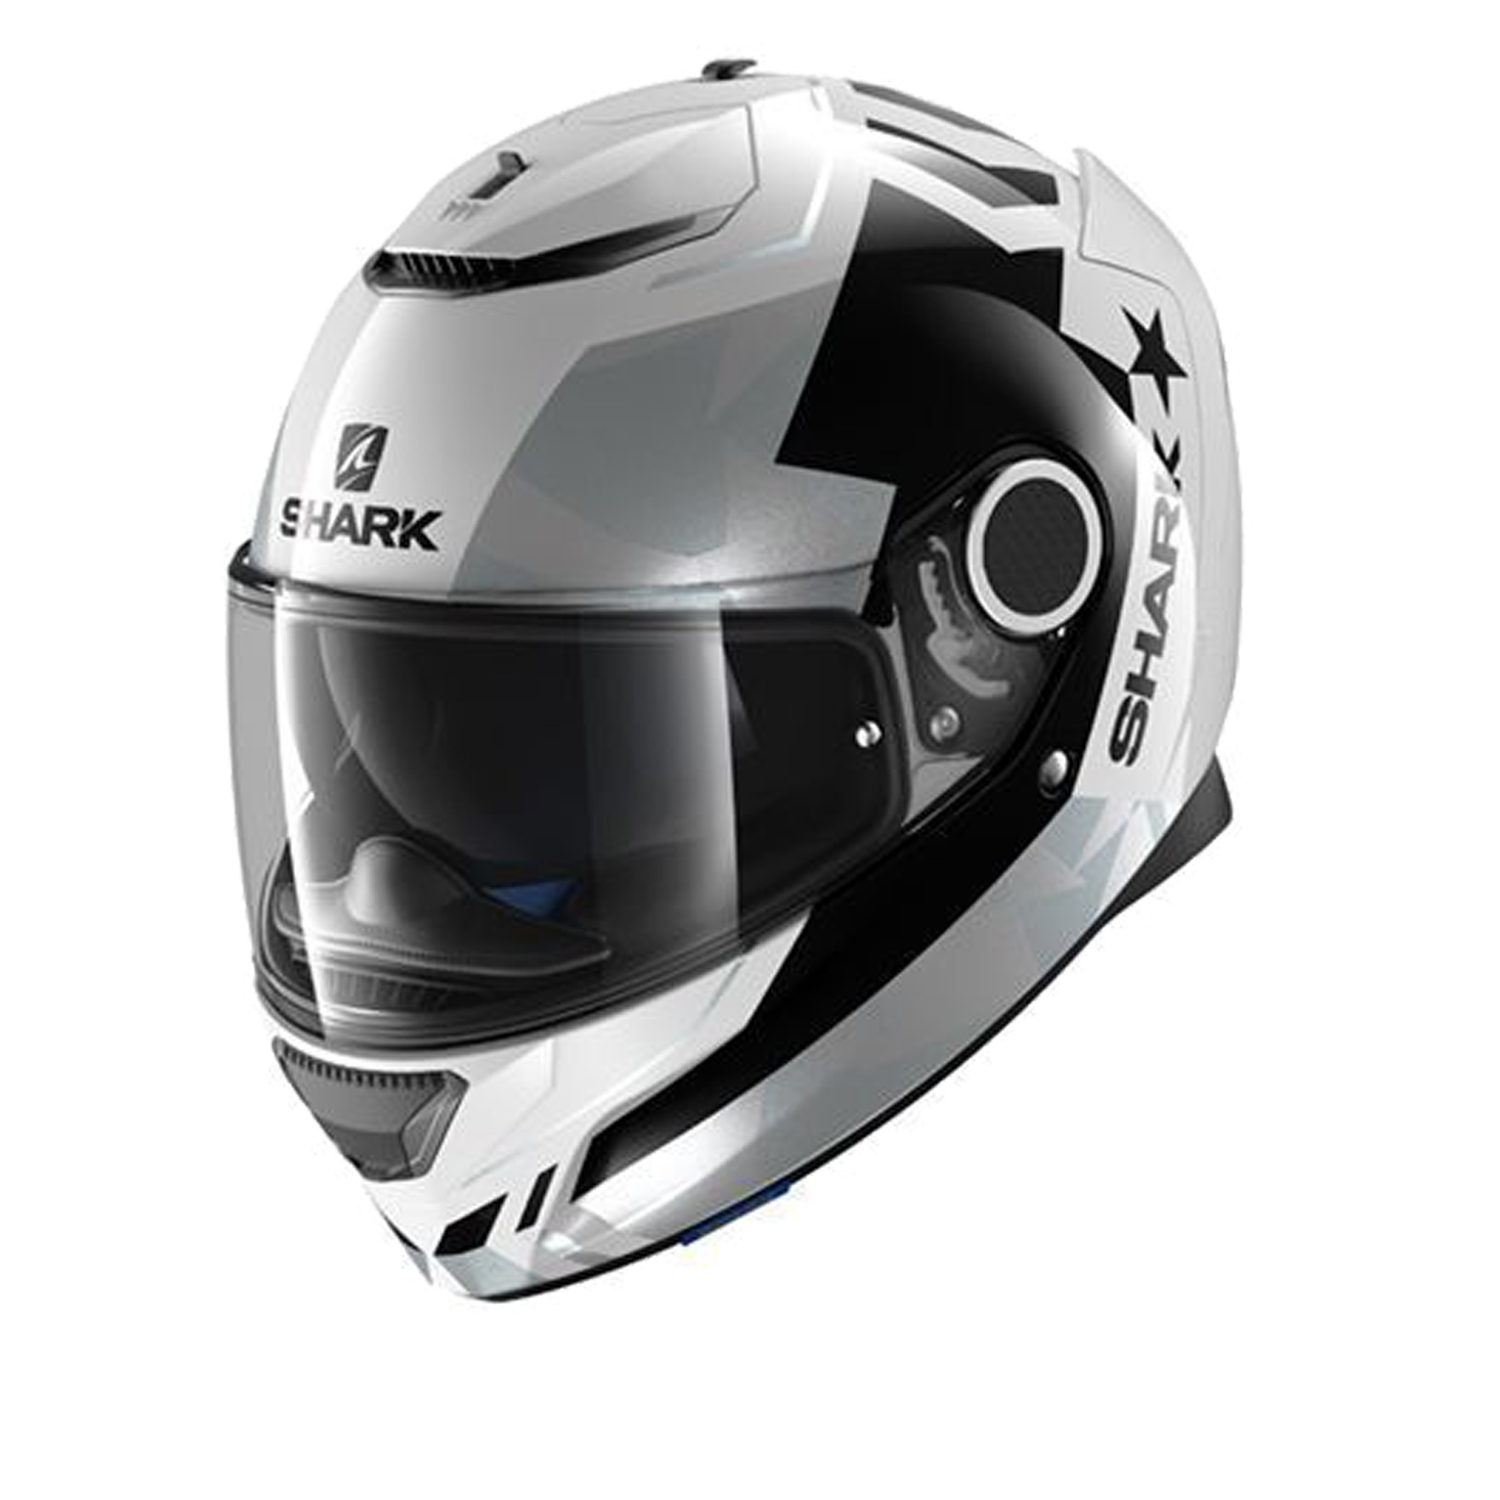 Casco Helmet Integrale Shark SPARTAN DROZE White black silver moto scooter